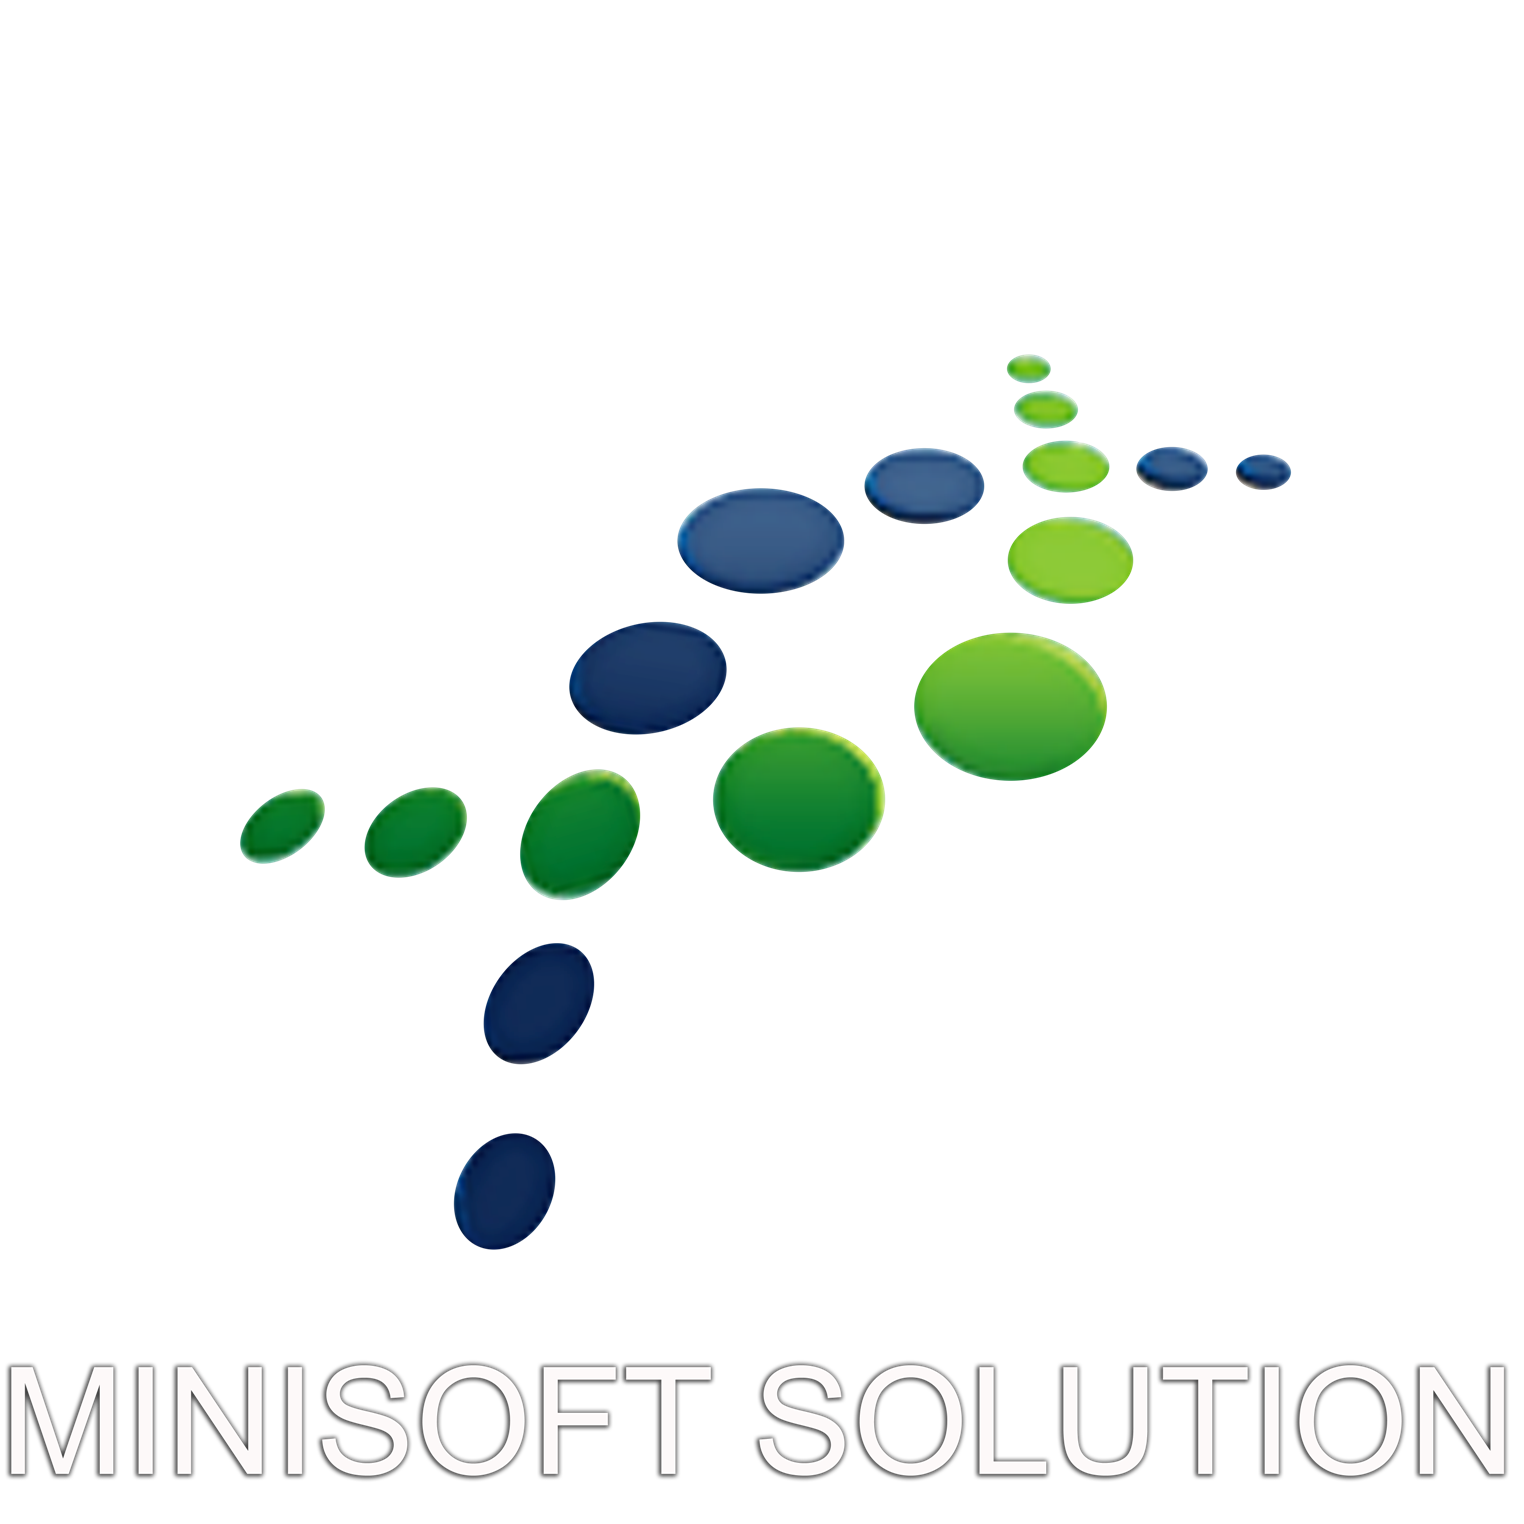 MinisoftSolution